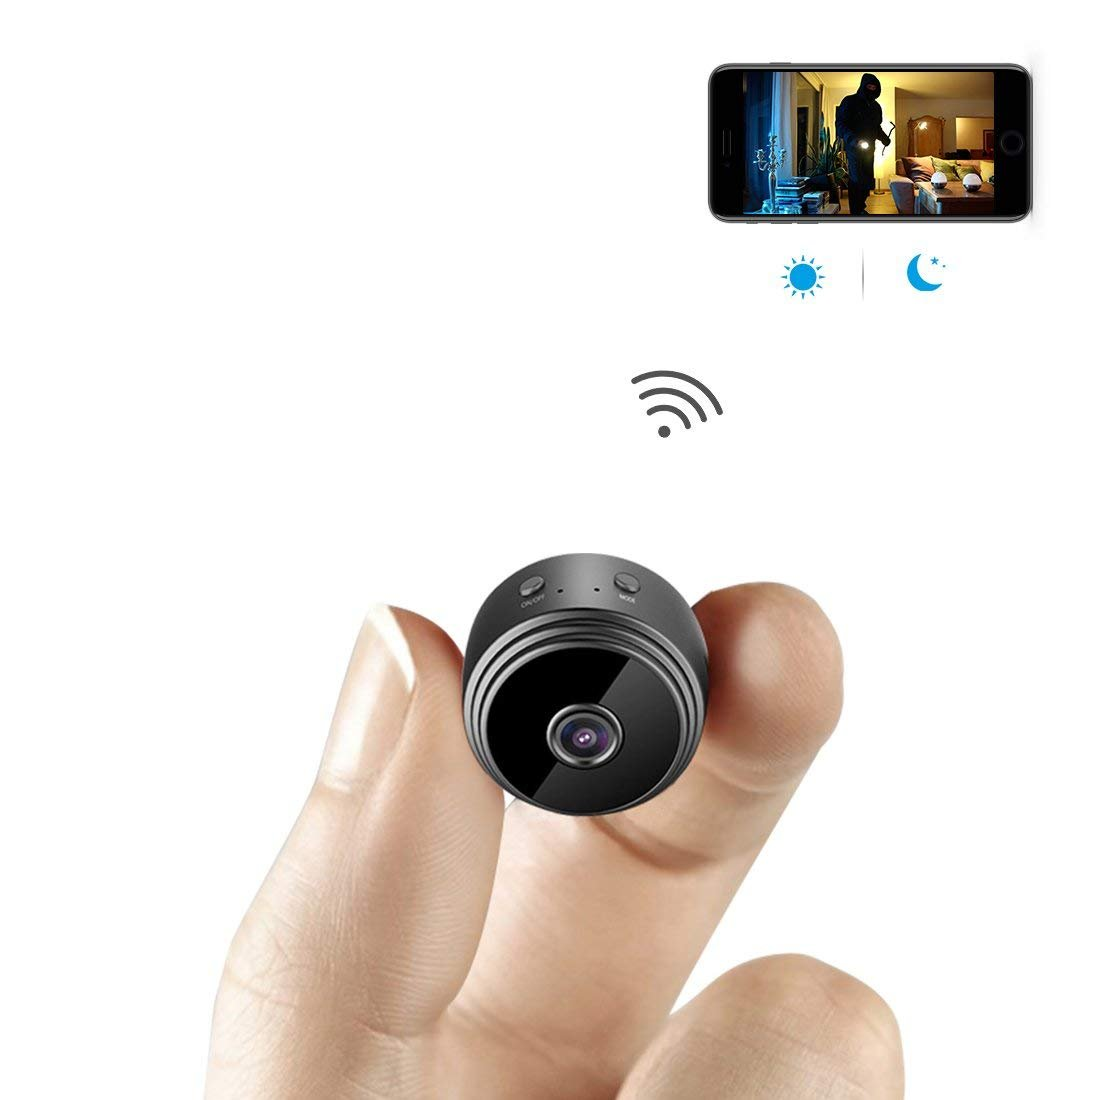 Versatile Dash Cam WiFi Battery Rear View Camera 1080P Magnet Audio Support SD Card Recording Motion Detection/Night Vision Smart Phone/Pad/PC Mini Hidden Camera Baby Monitor Nanny Cam